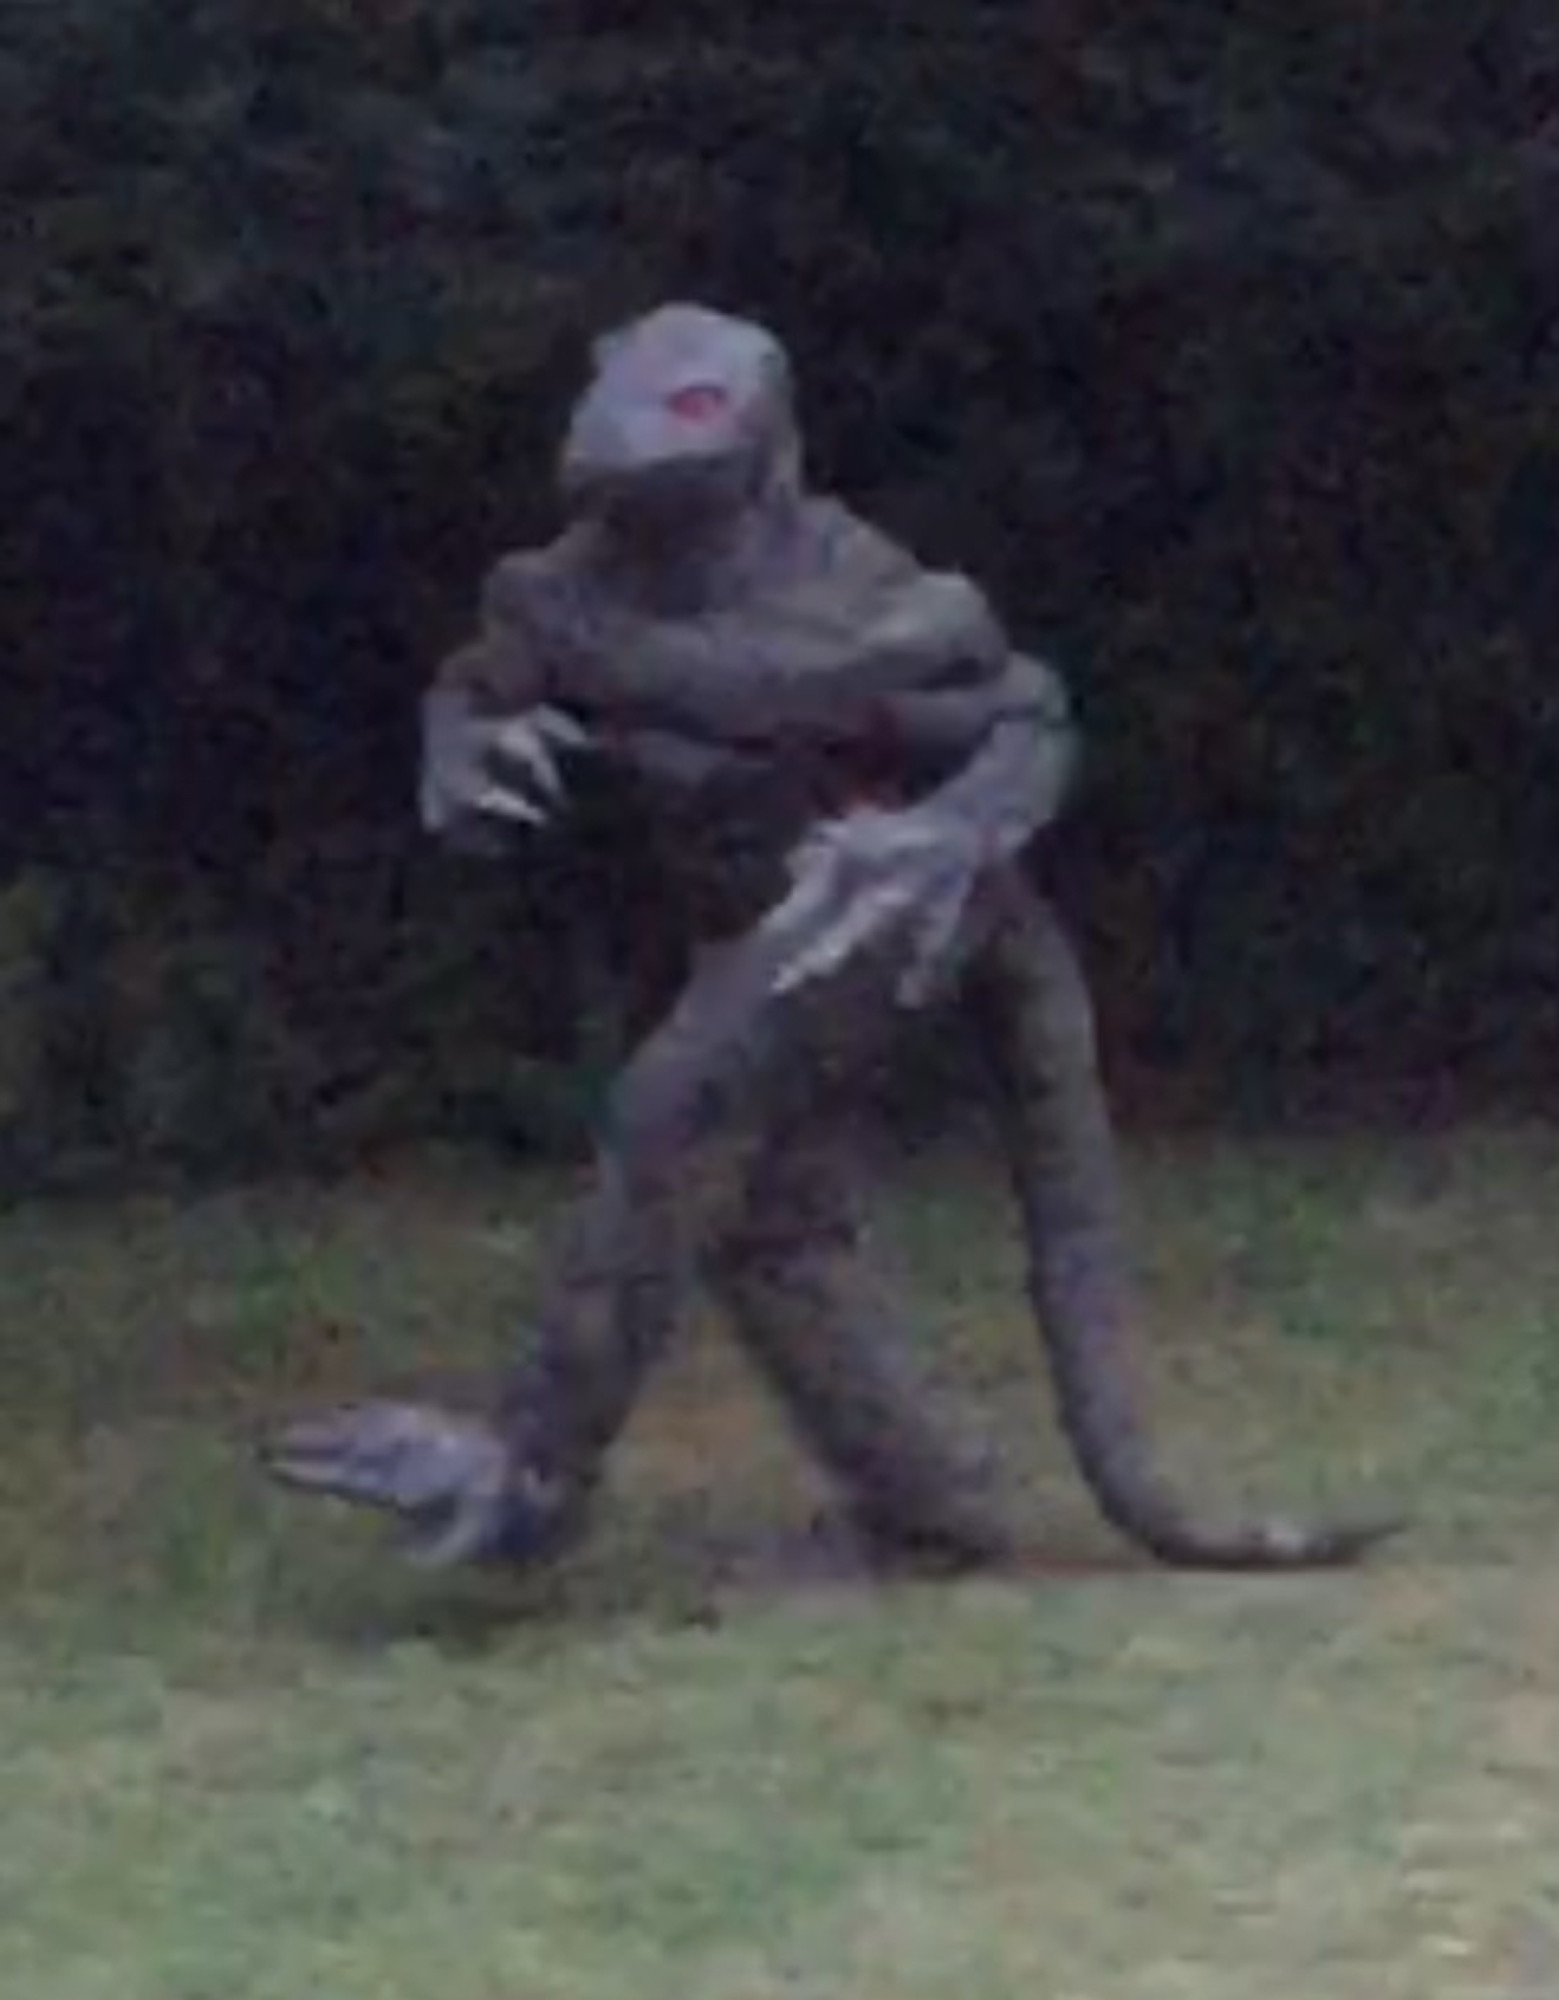 The last known photo of the legendary 'Lizard Man' of Scape Ore Swamp was purportedly taken and submitted by a Sumter Item reader in August 2015 walking along a treeline near Bishopville.